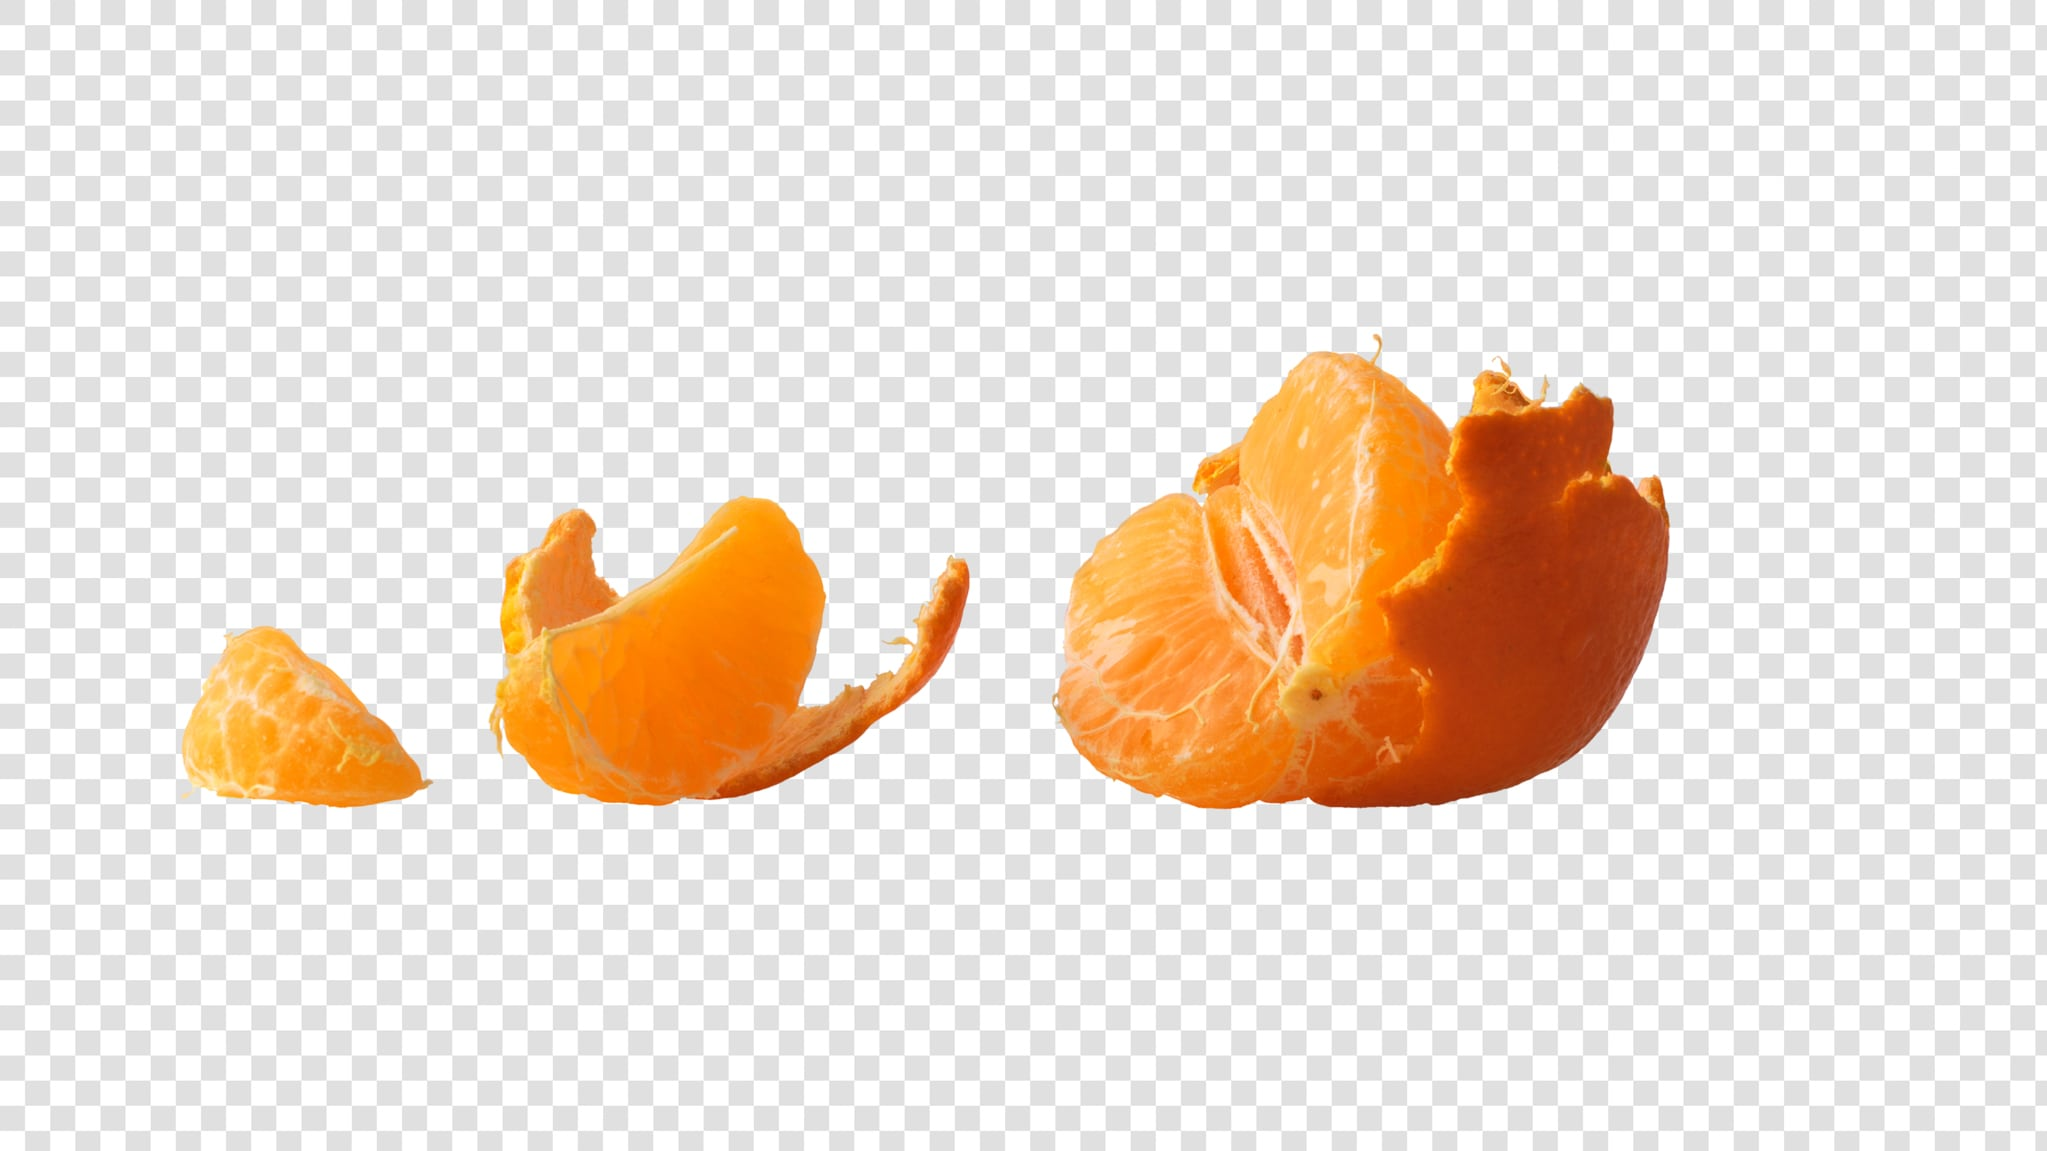 Orange PSD layered image